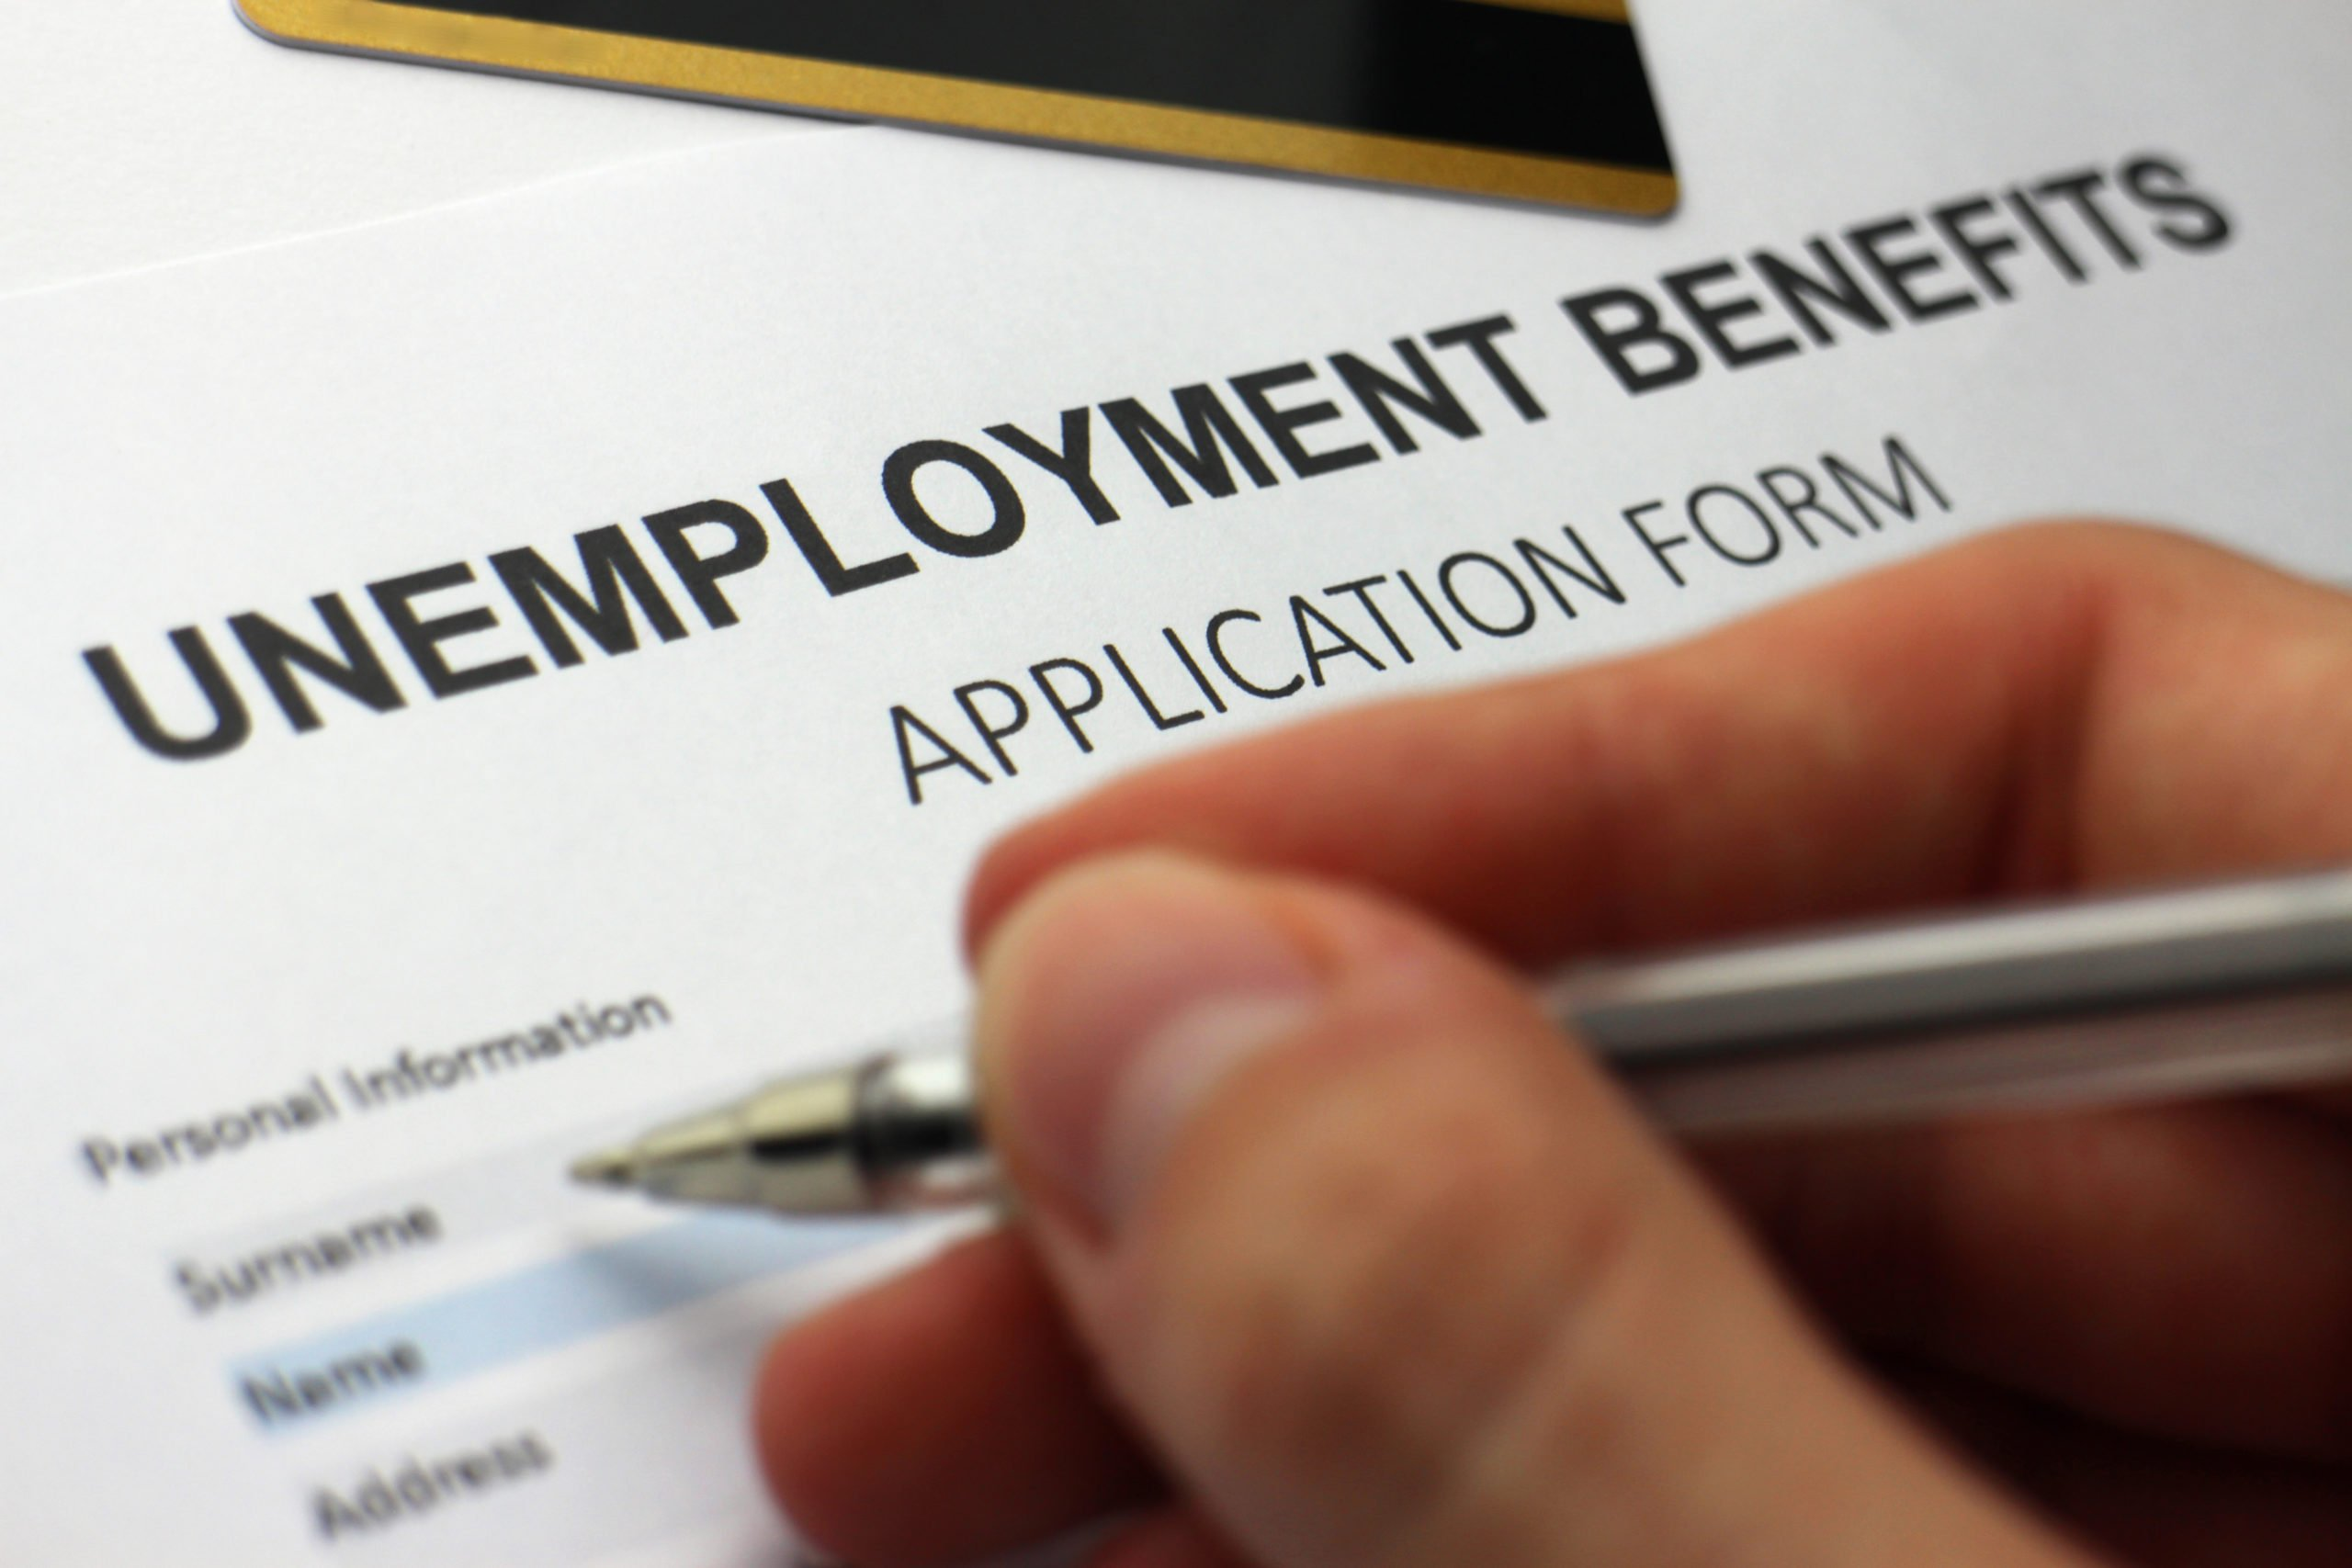 Sample Graphic of an Unemployment Benefits Application Form